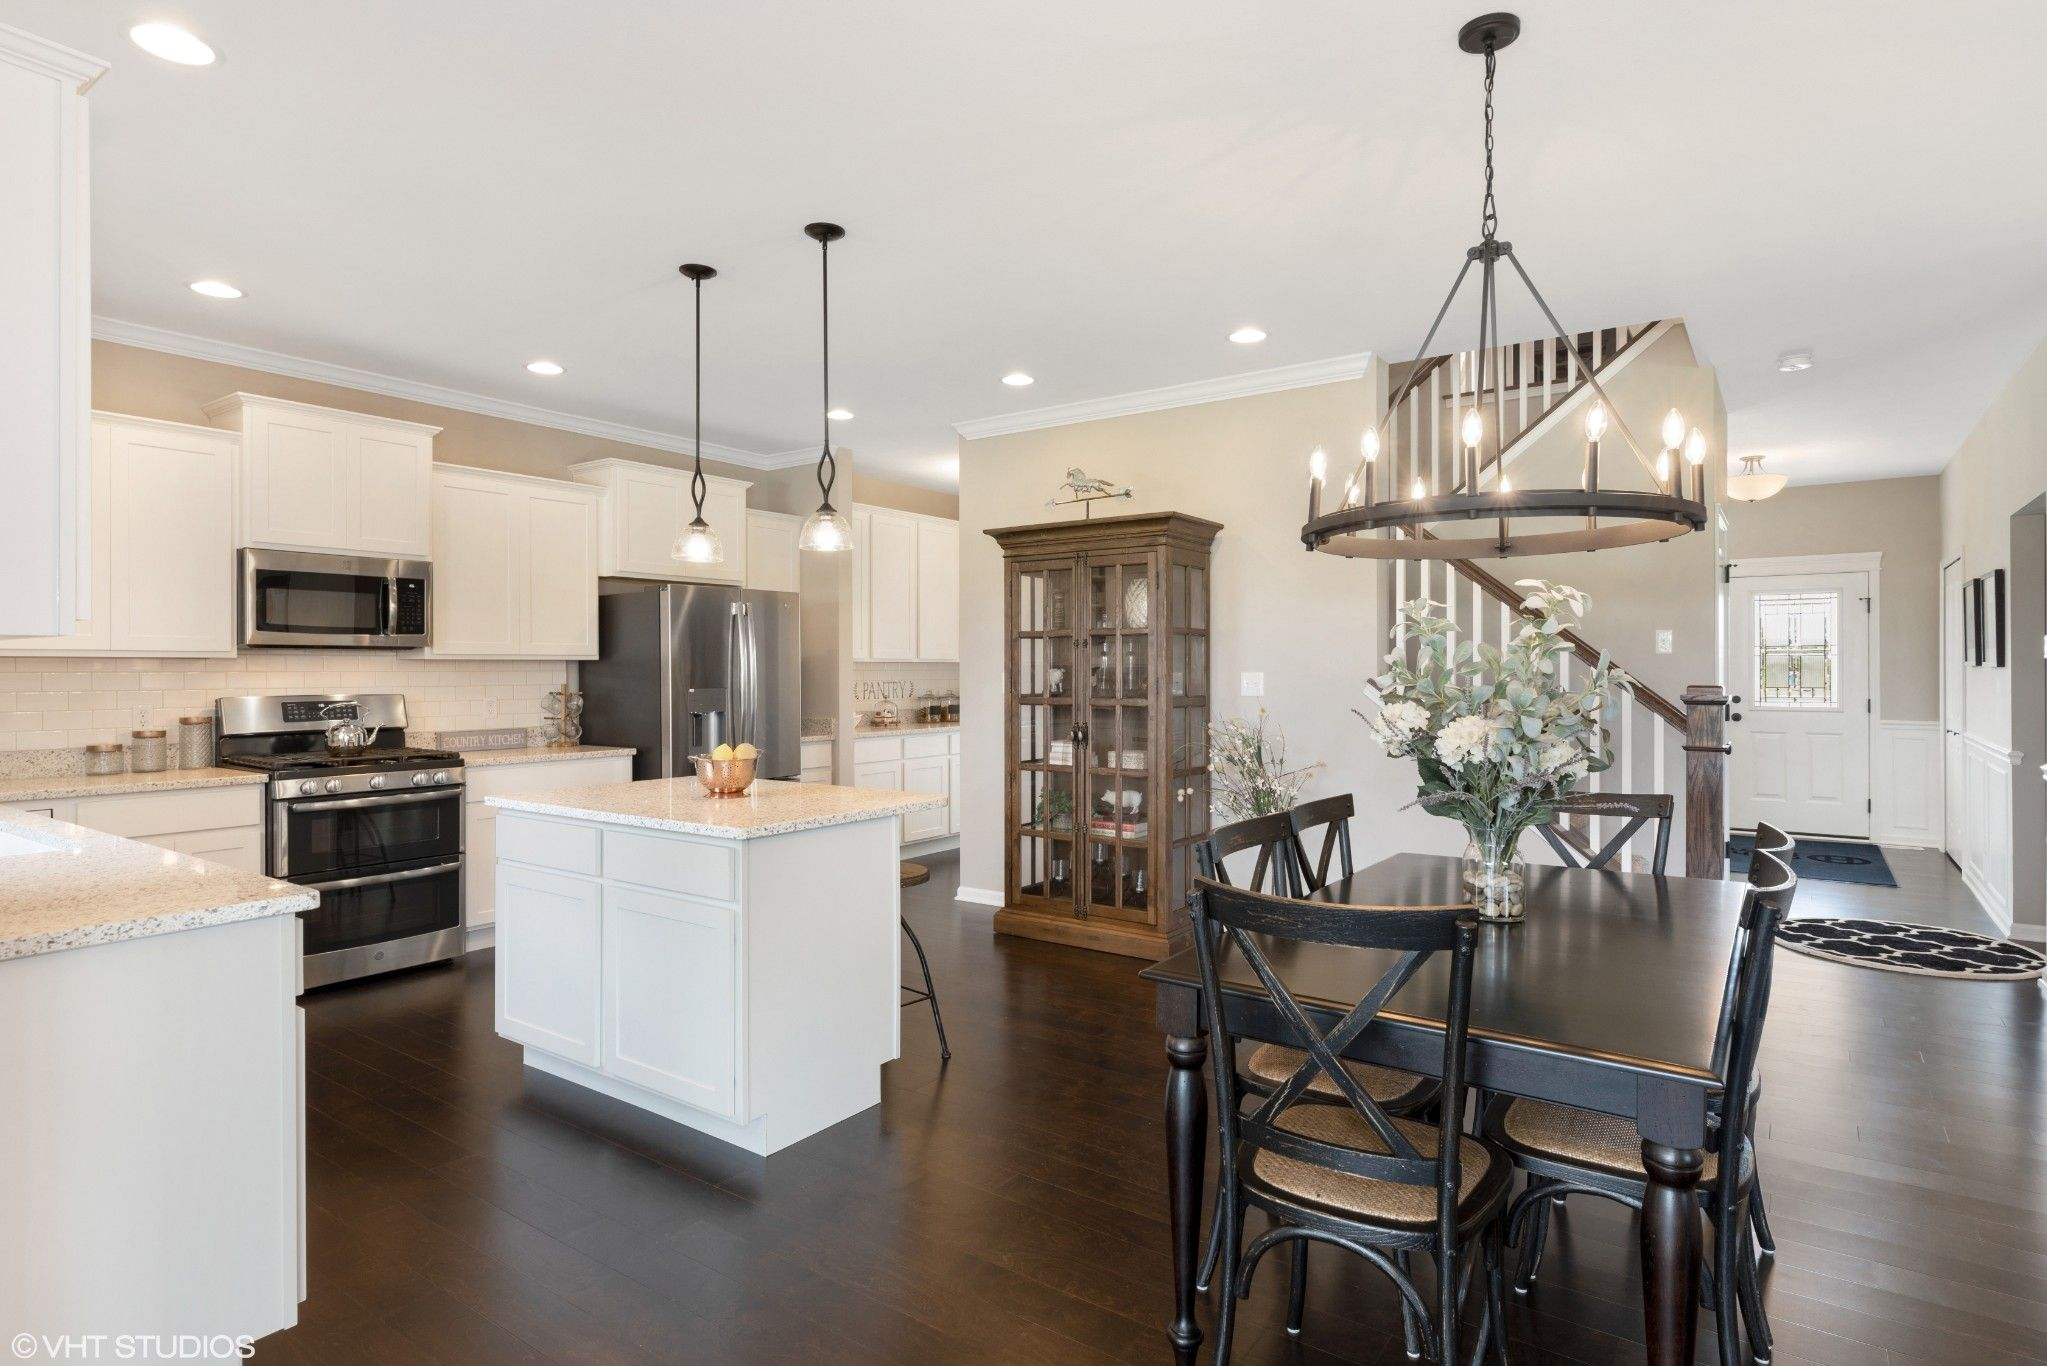 Kitchen featured in the Berkley By Olthof Homes in Fort Wayne, IN